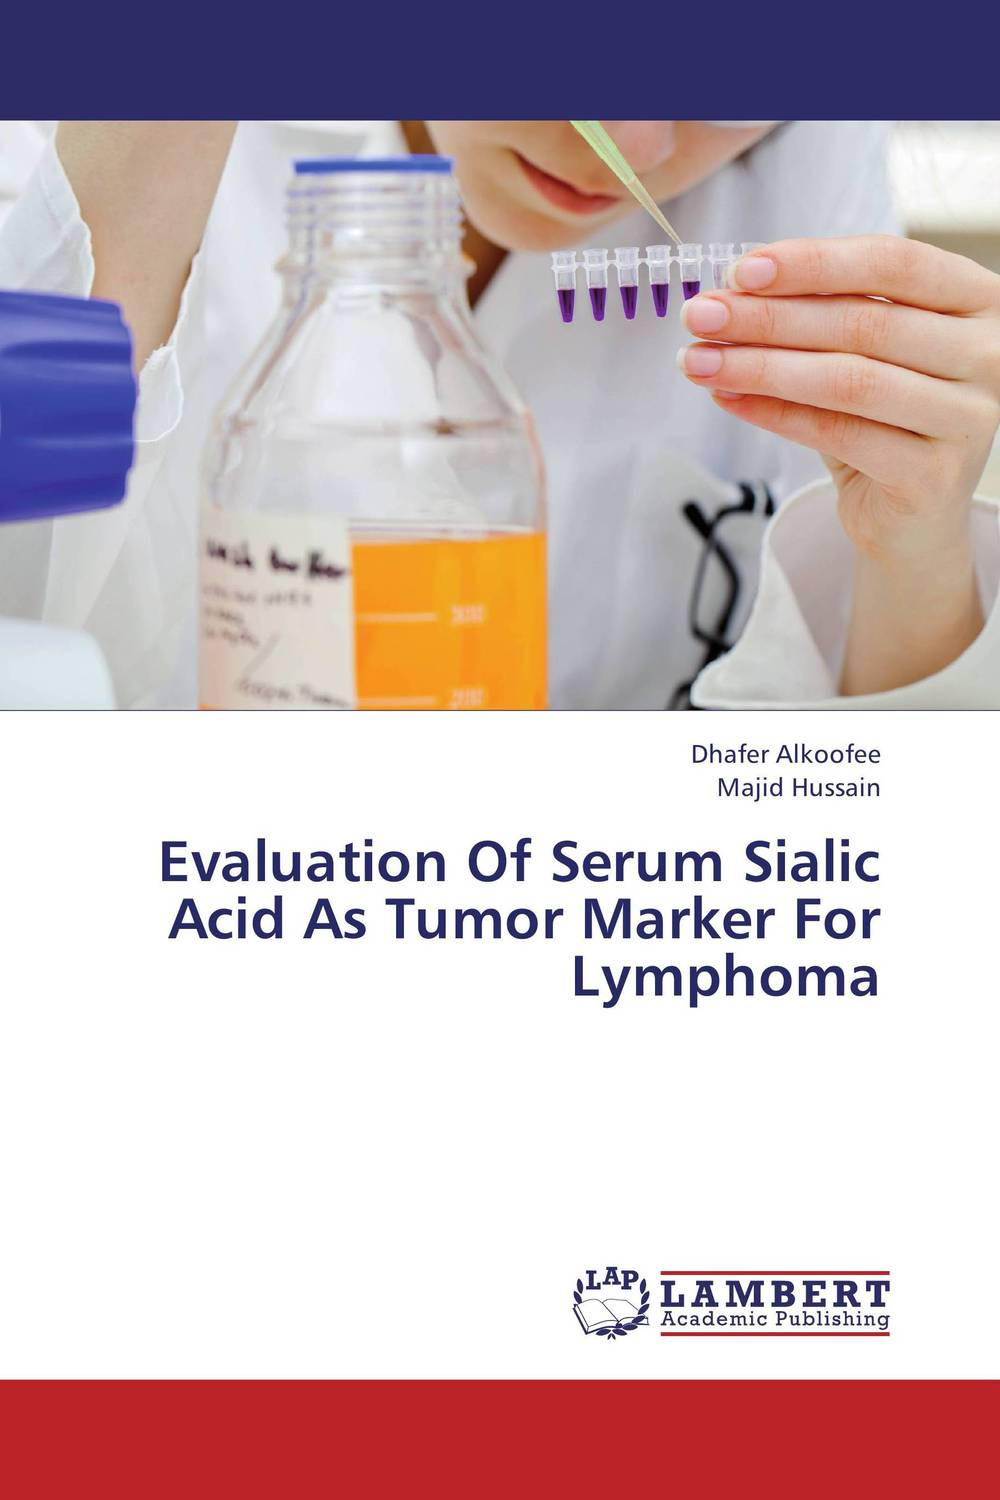 Evaluation Of Serum Sialic Acid As Tumor Marker For Lymphoma arvinder pal singh batra jeewandeep kaur and anil kumar pandey factors associated with breast cancer in amritsar region